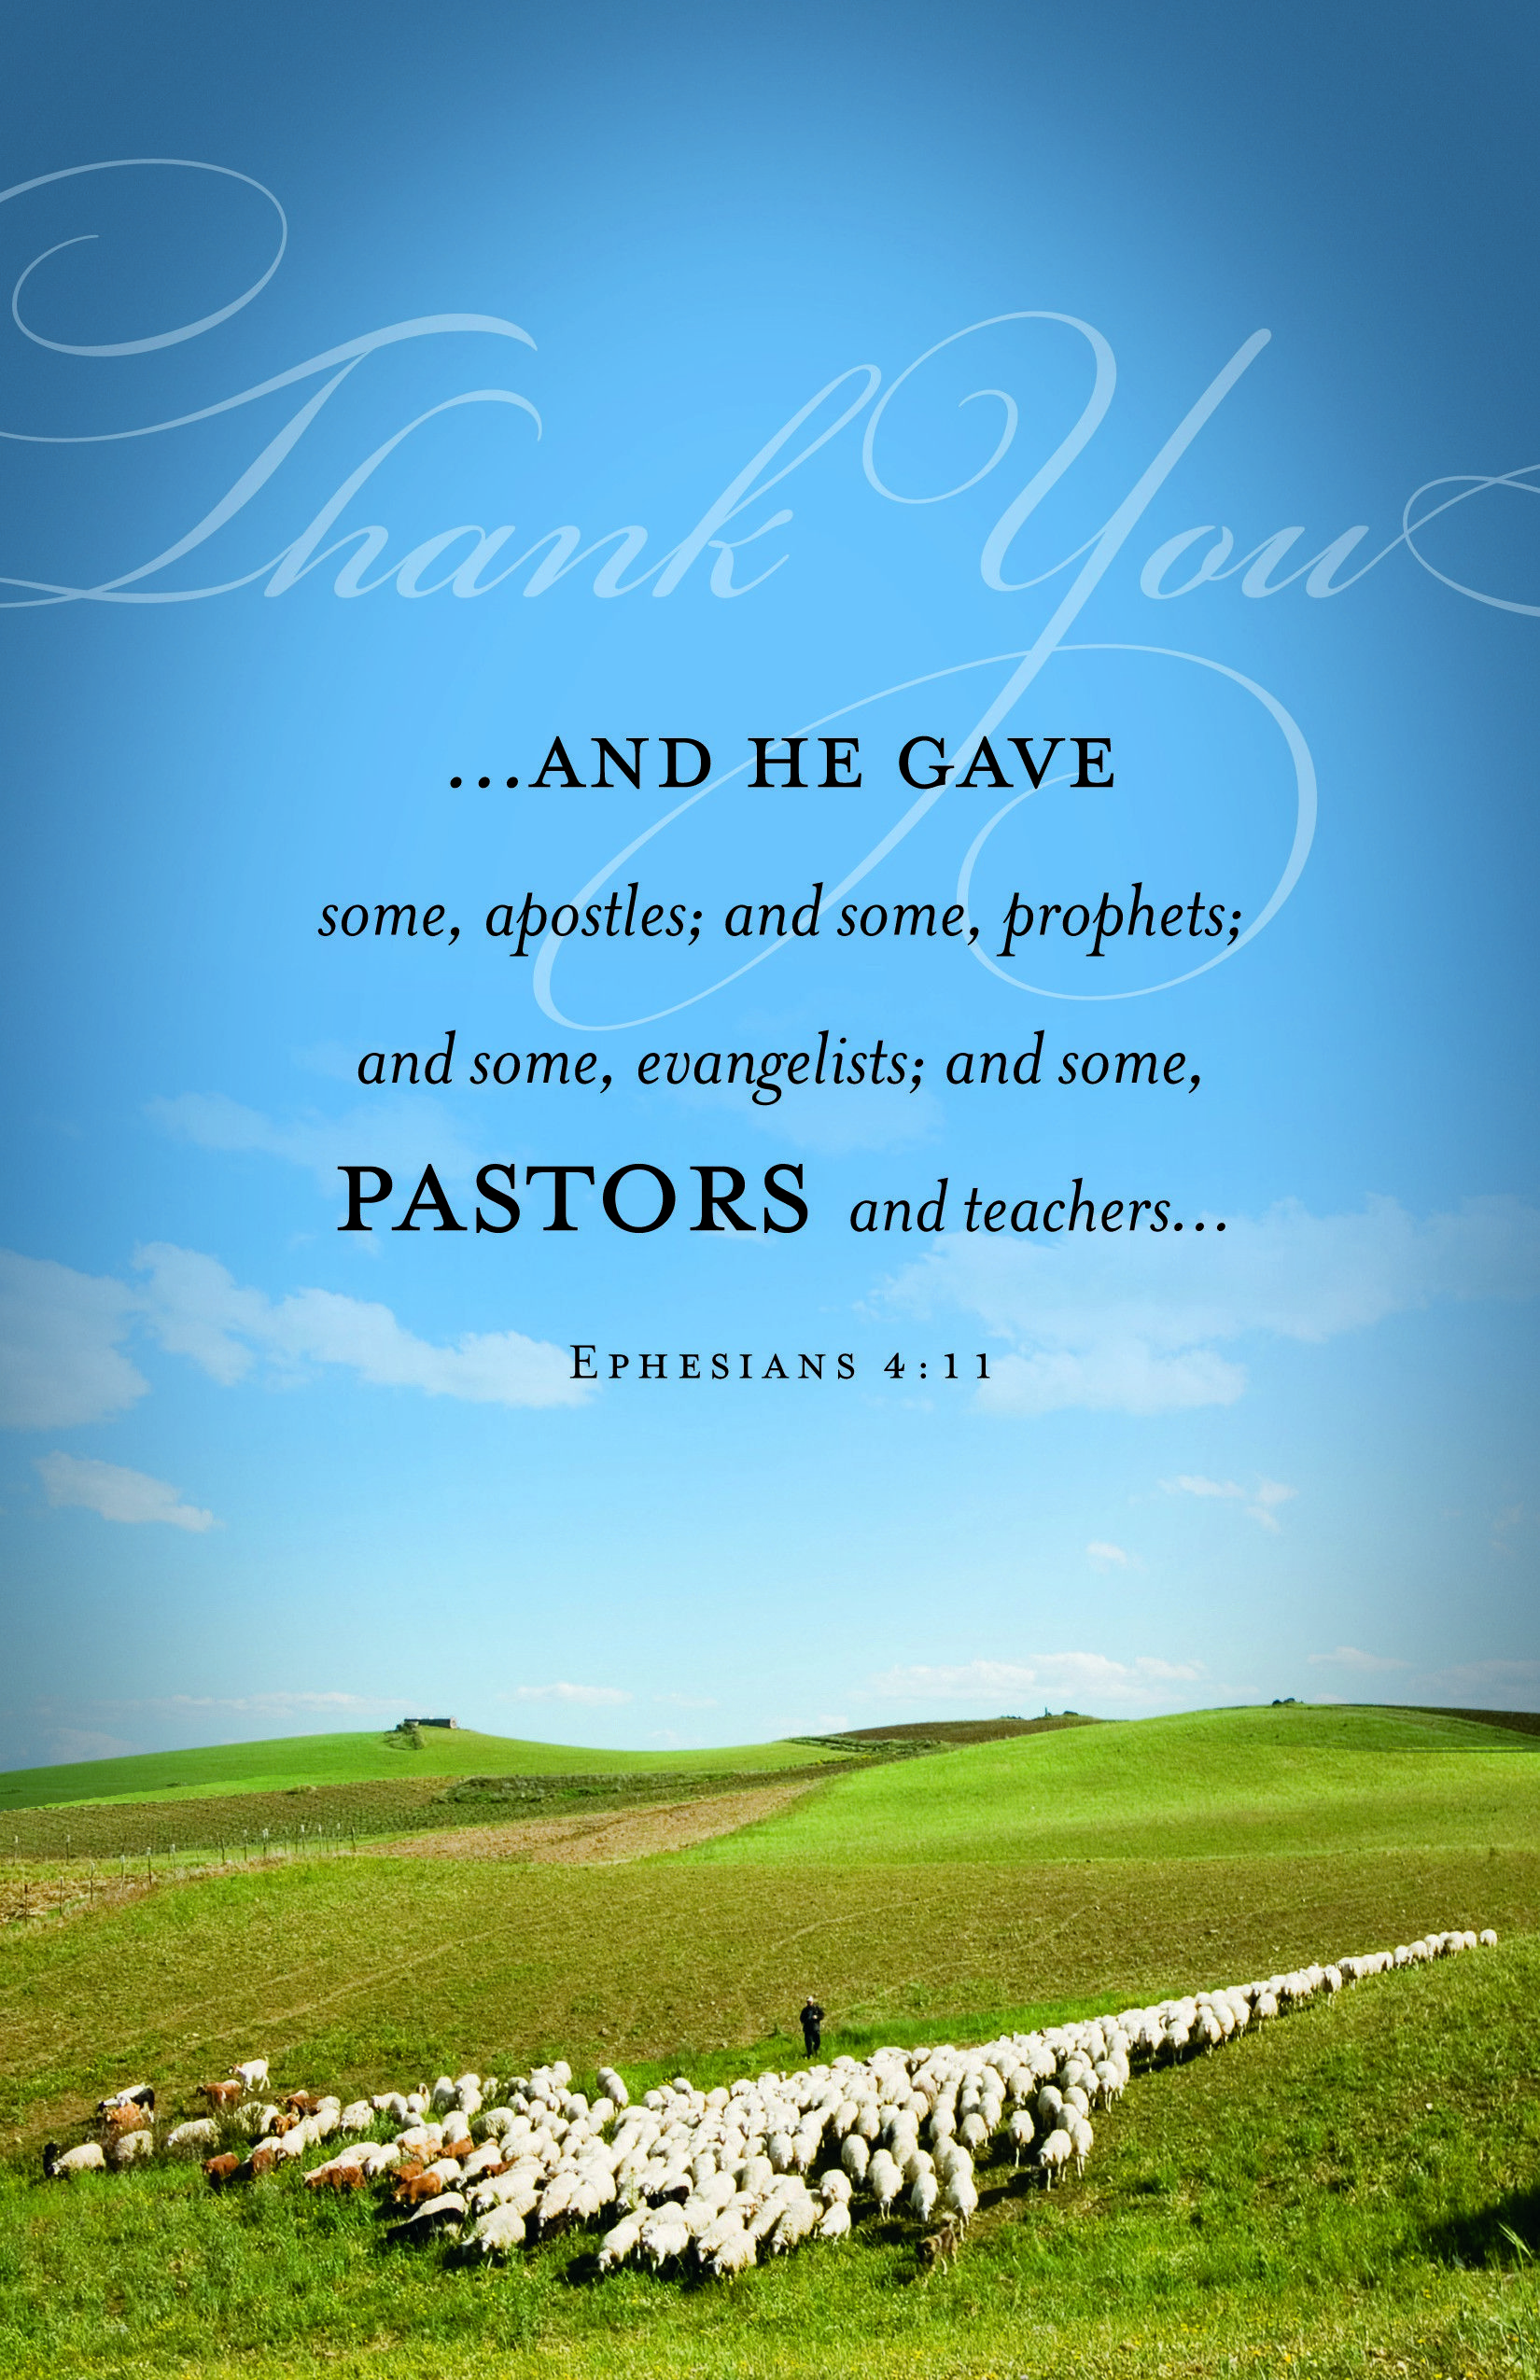 Pin by Diane Townsend on Pastor's Anniversary.